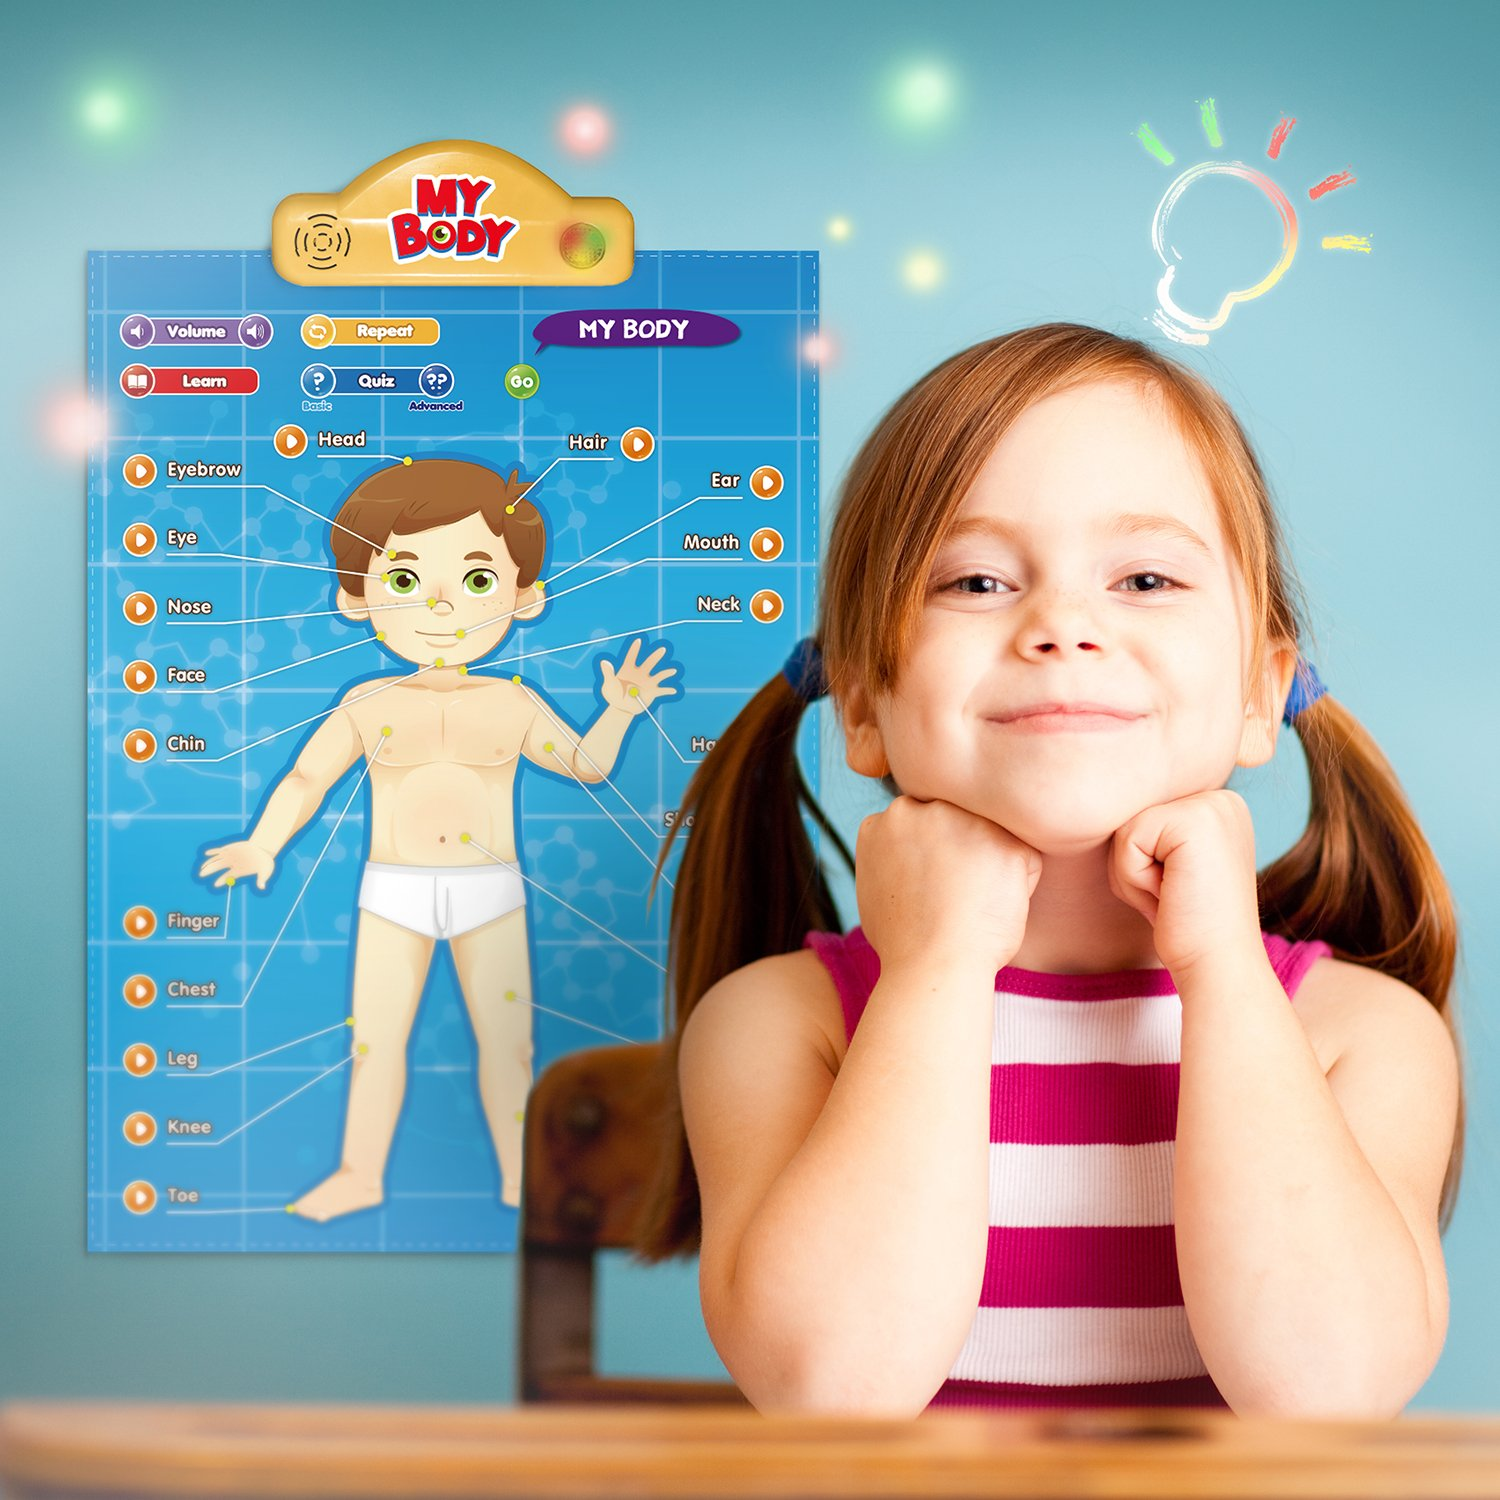 BEST LEARNING i-Poster My Body - Interactive Educational Human Anatomy Talking Game Toy System to Learn Body Parts, Organs, Muscles and Bones for Kids Aged 5 to 12 by BEST LEARNING (Image #2)